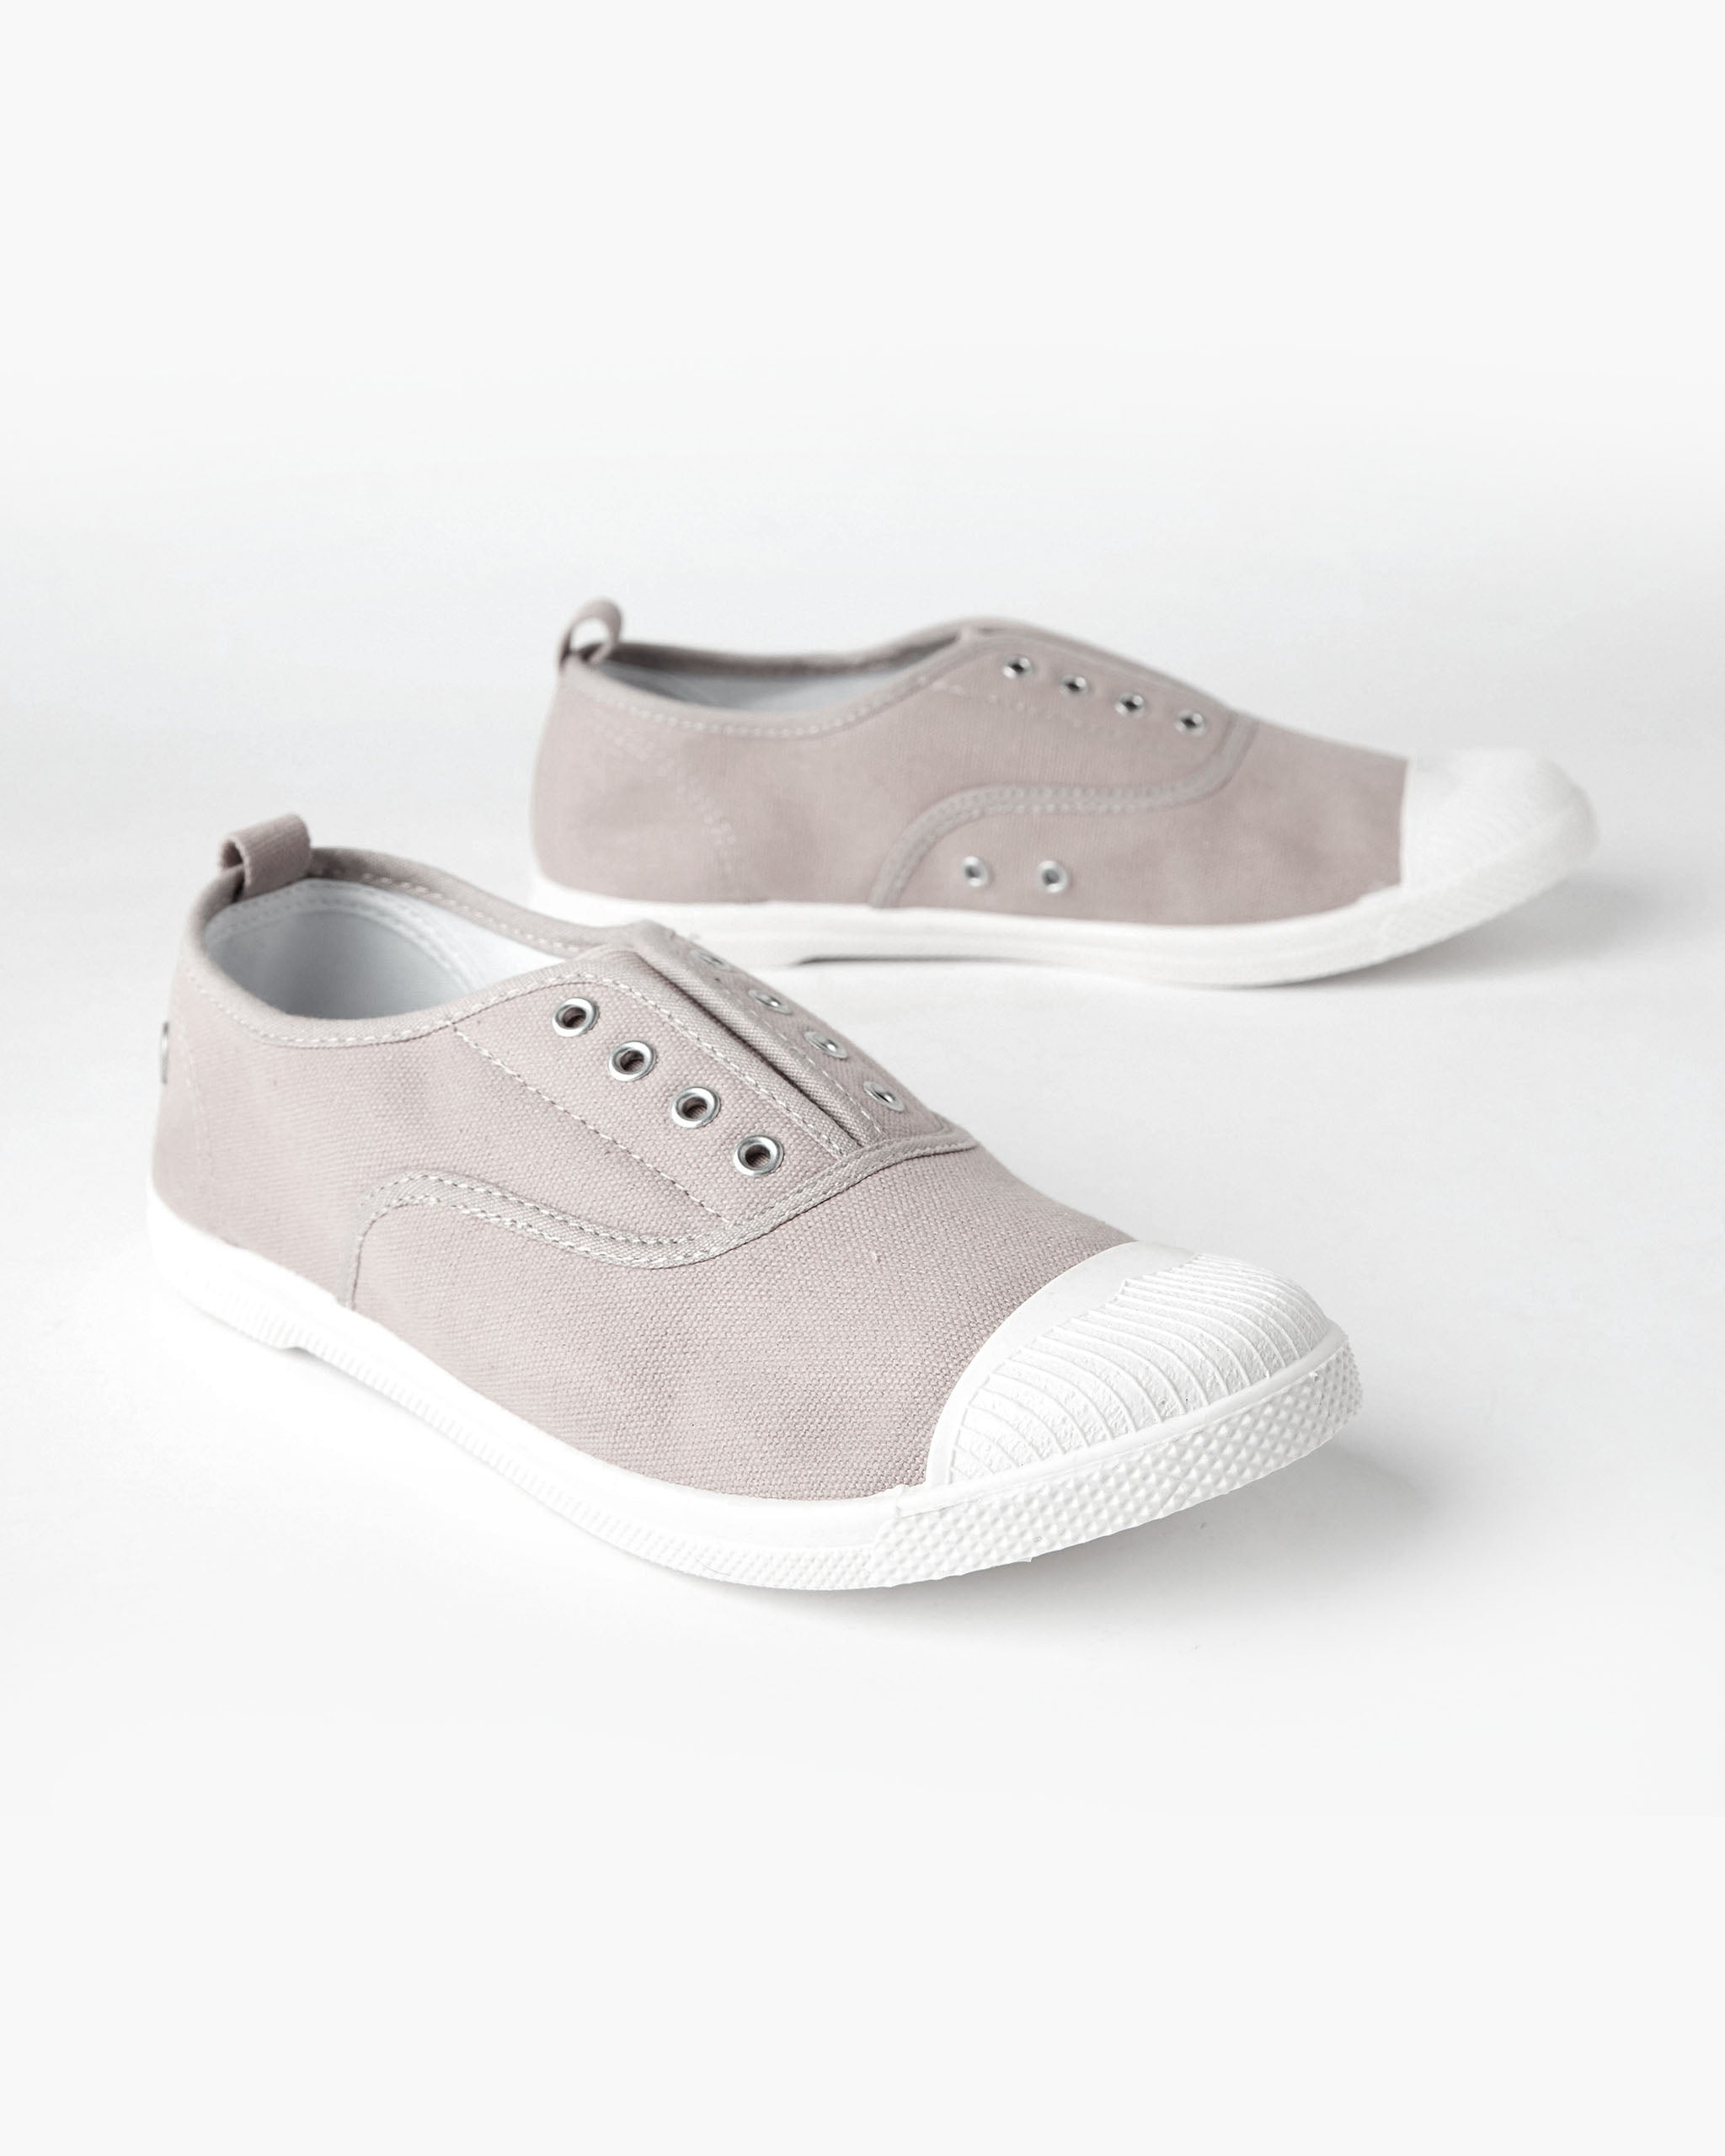 Euro Canvas Plimsole - Grey